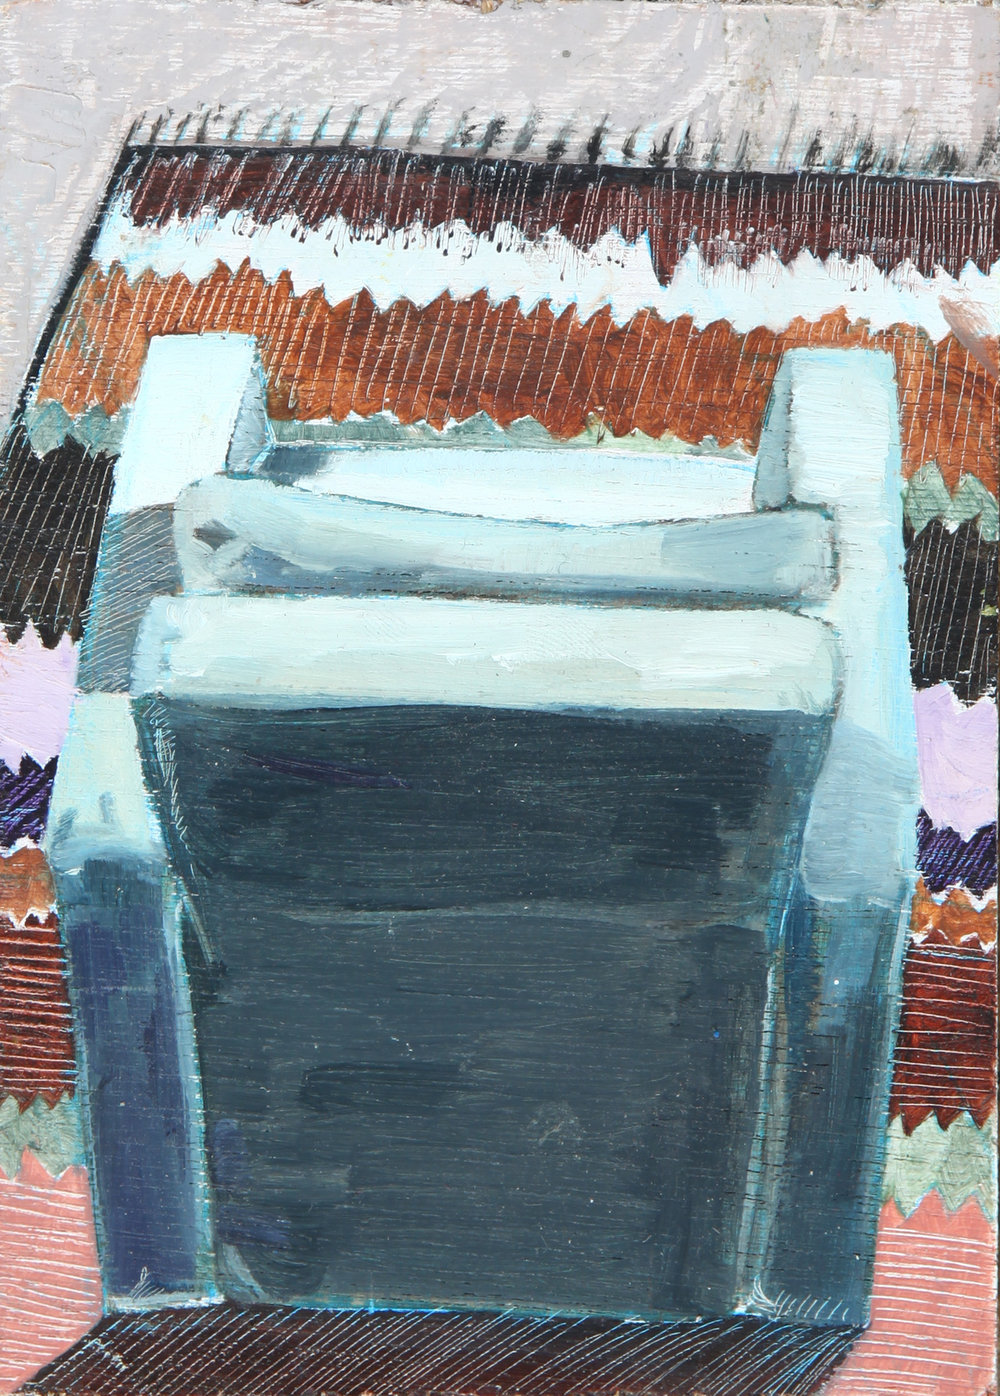 'Chair View'   - 2015  7x 10cm  Oil on Board    Price: £132